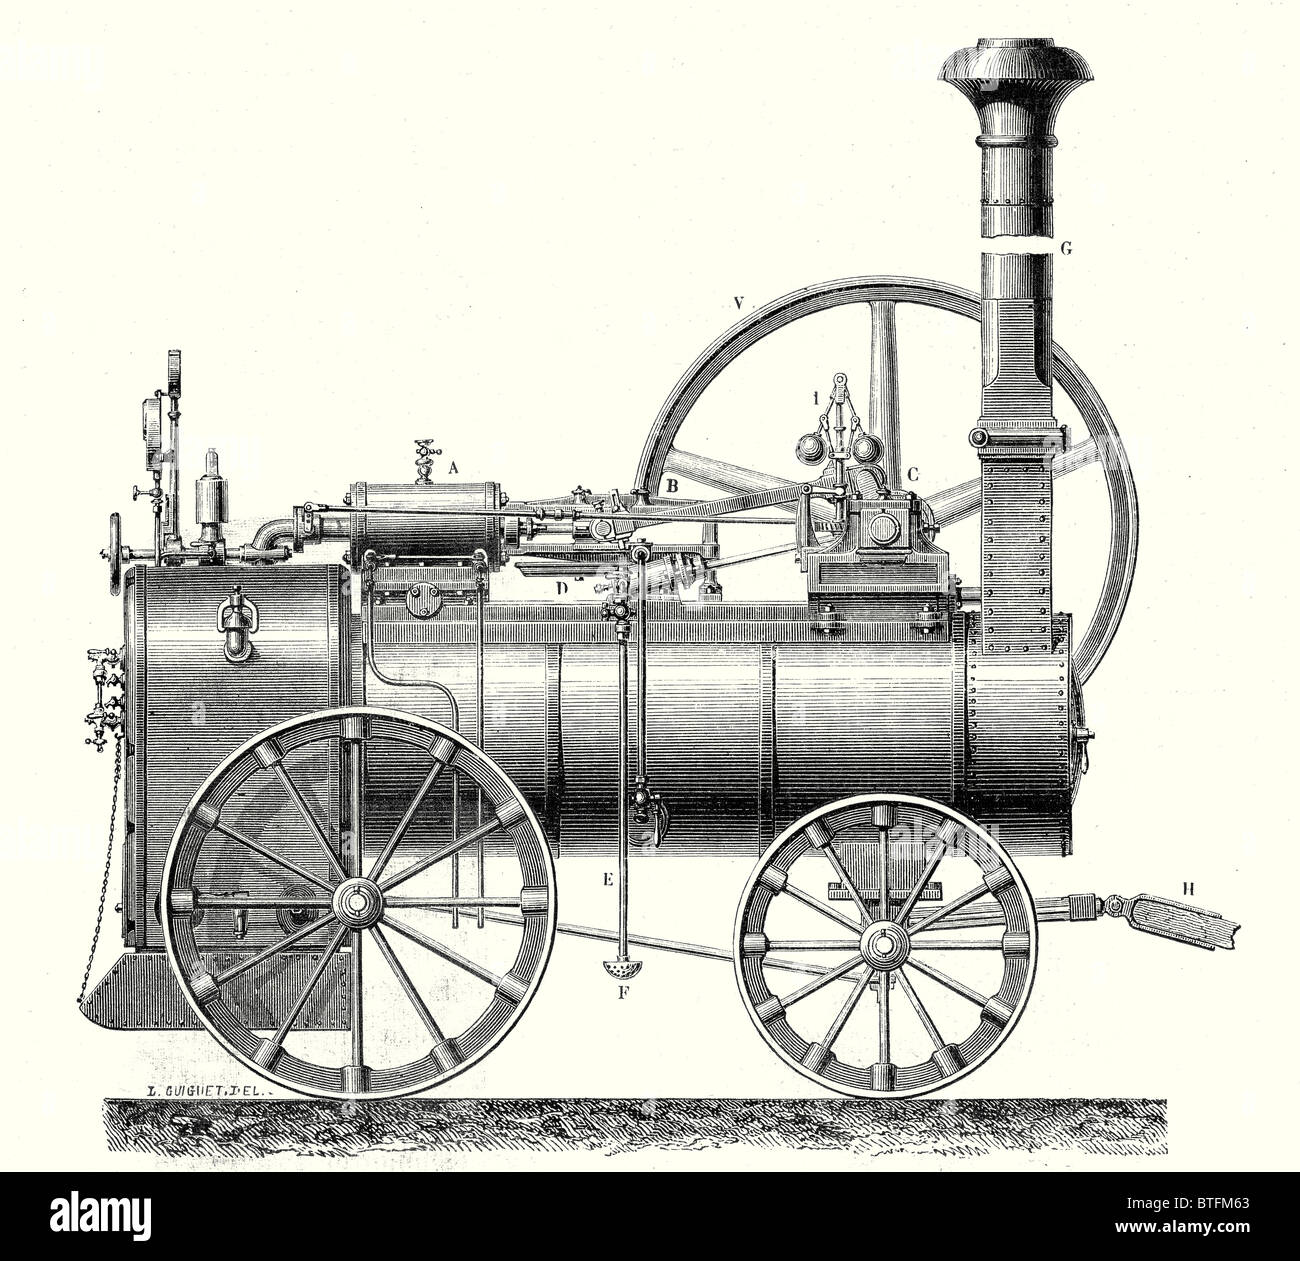 M. Calla's traction engine - Stock Image